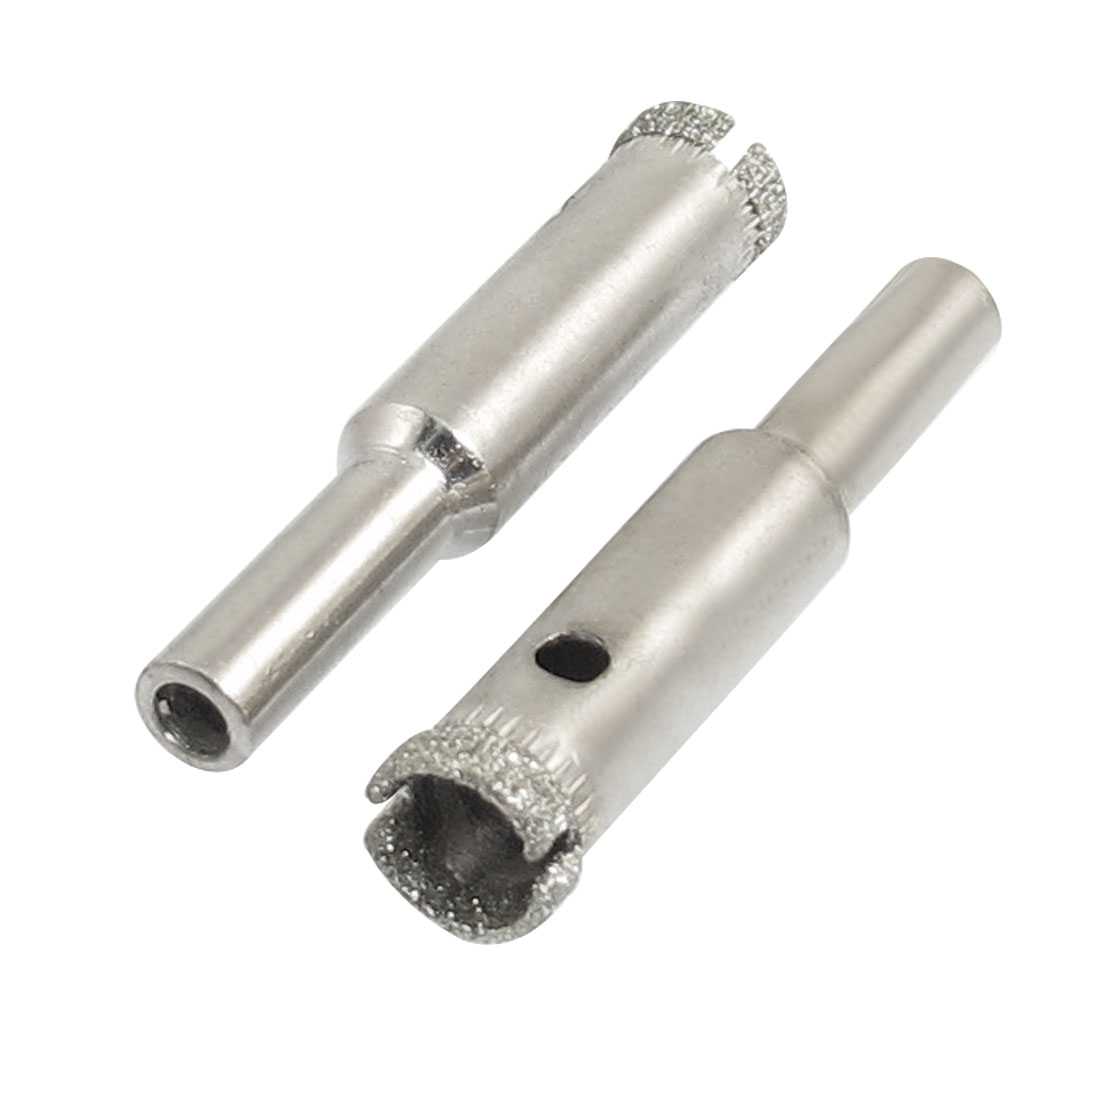 "2 Pcs Diamond Drill Bits 10mm 25/64"" Bottle Glass Tile Granite Hole Saw"